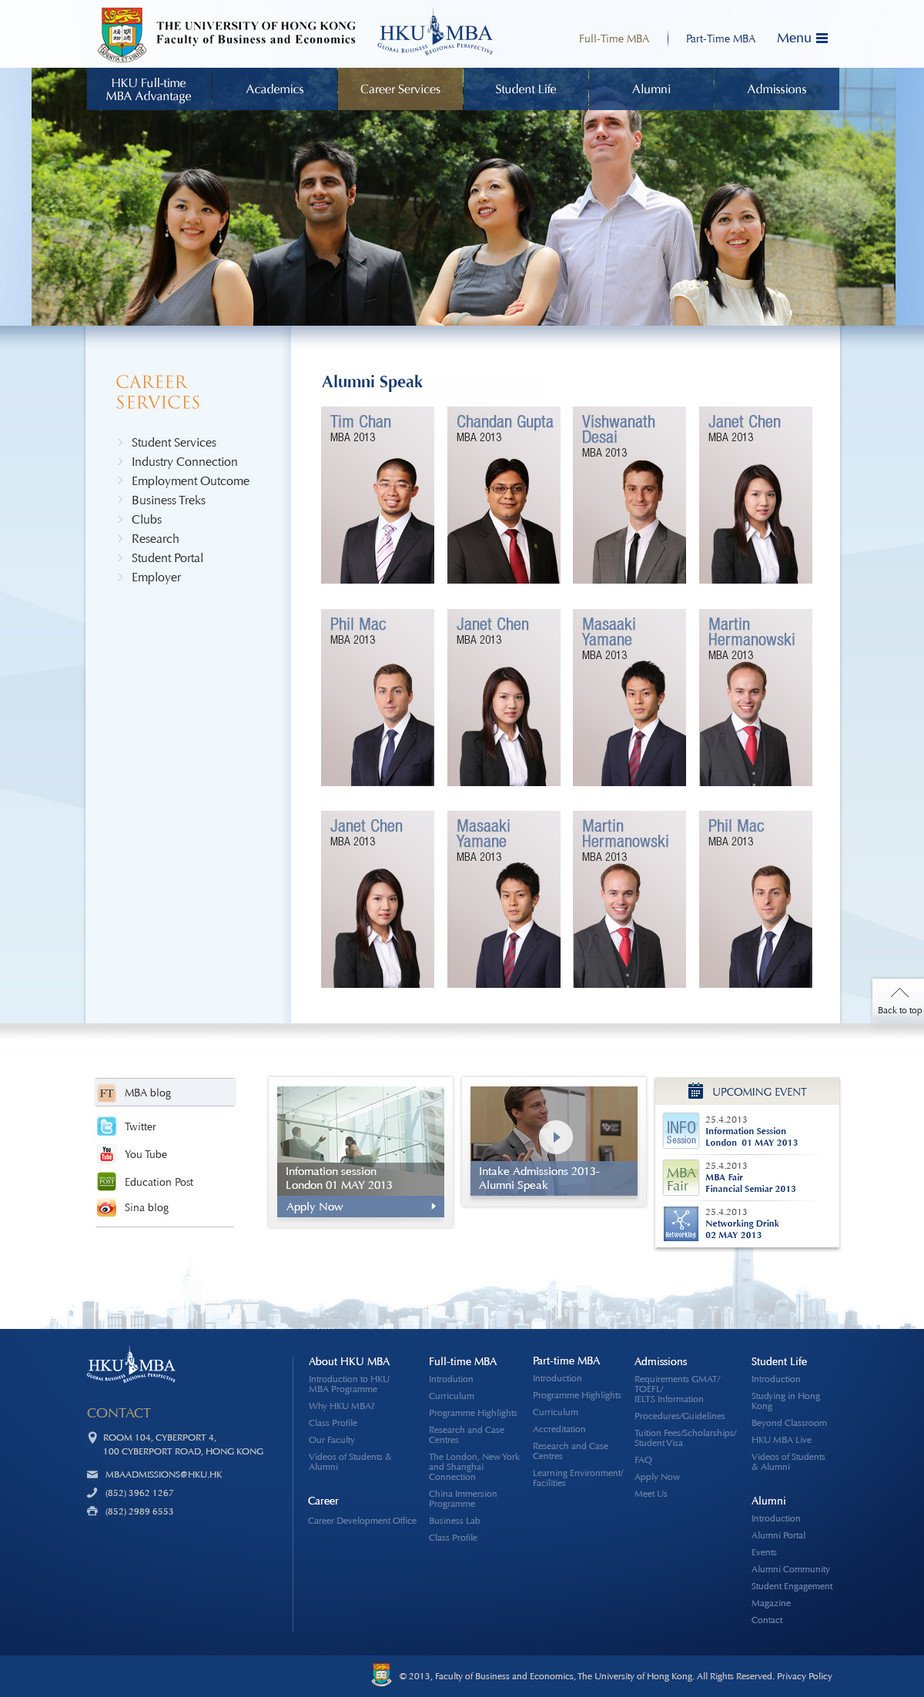 University of Hong Kong website screenshot for desktop version 4 of 8